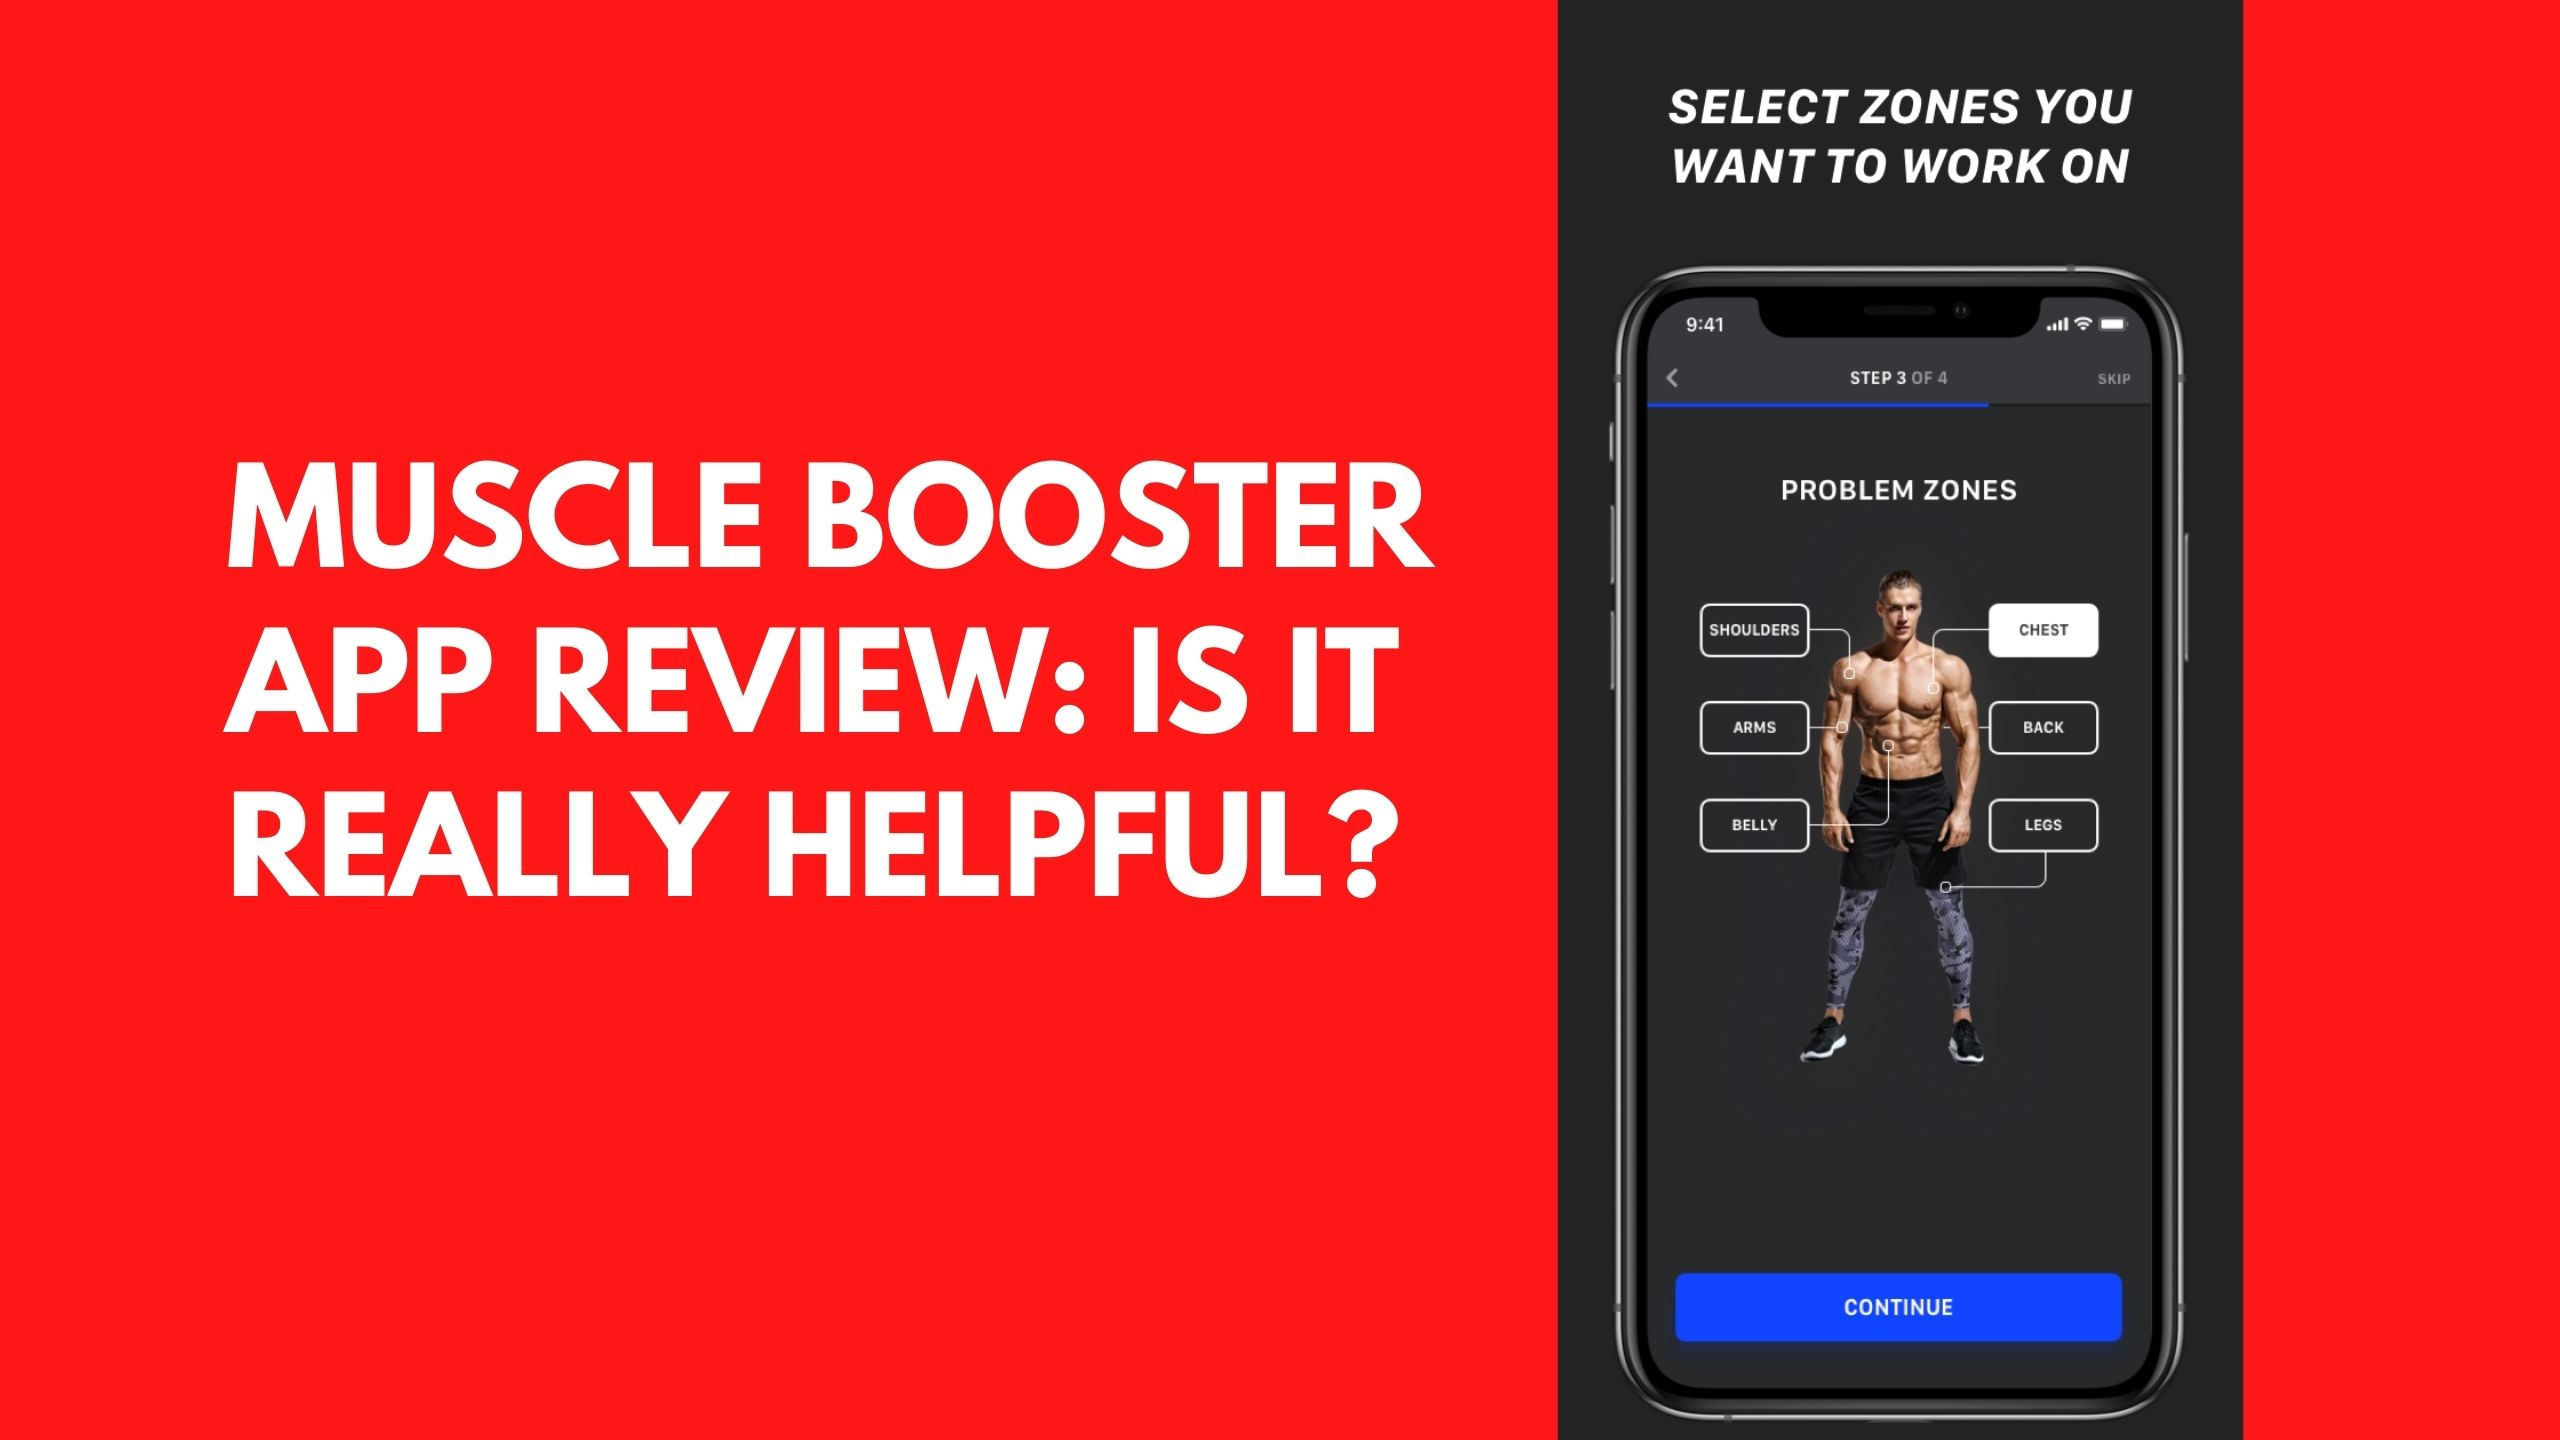 Muscle Booster App Review